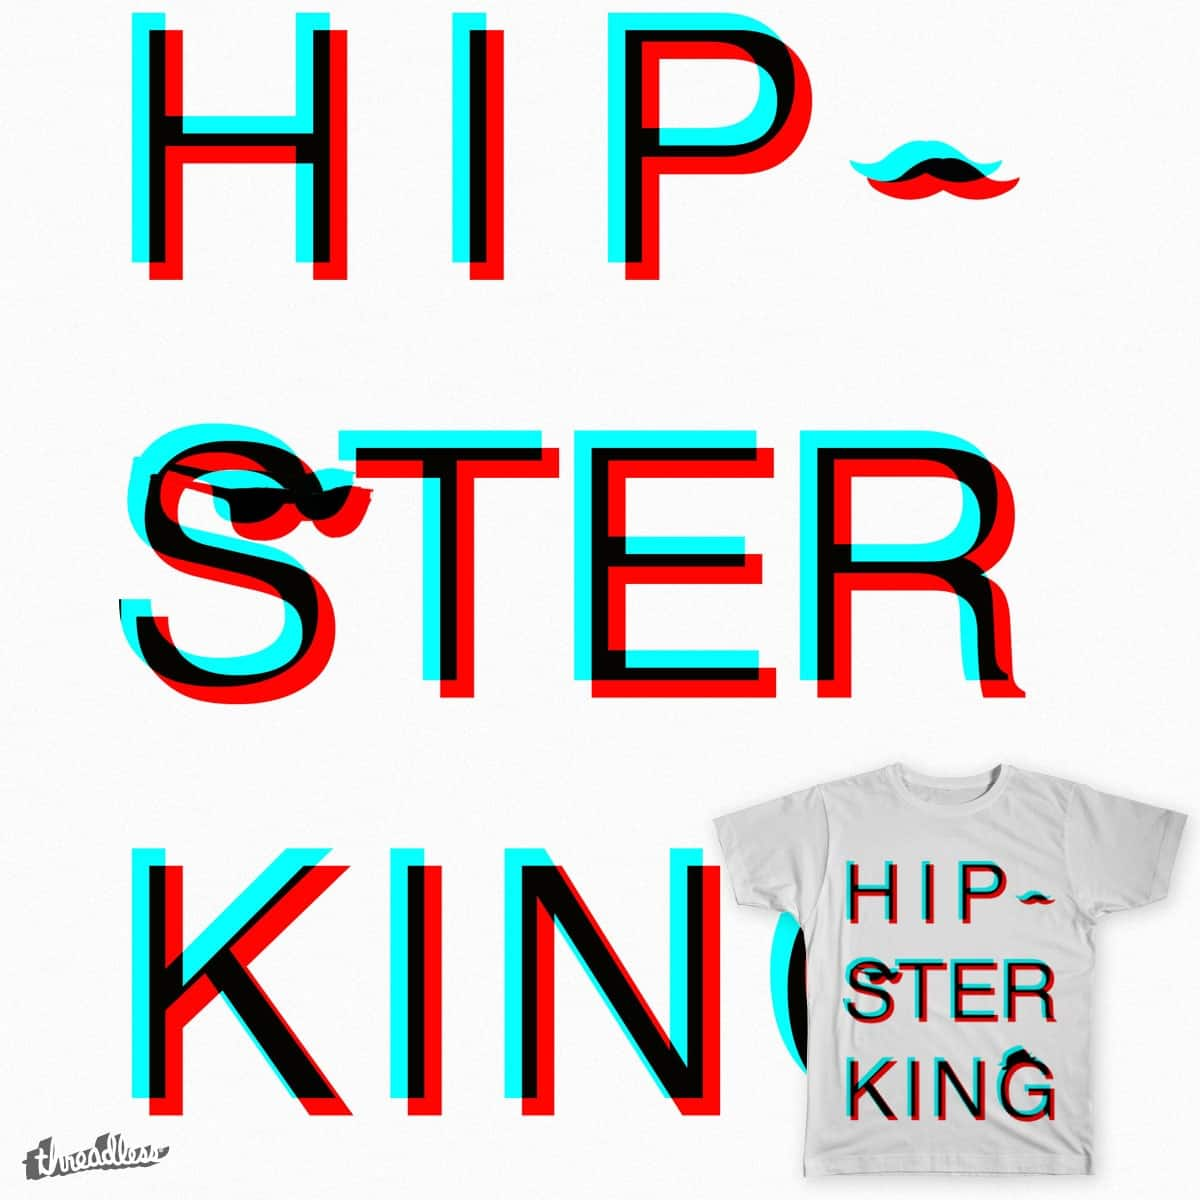 Hipster King by Applestooranges on Threadless